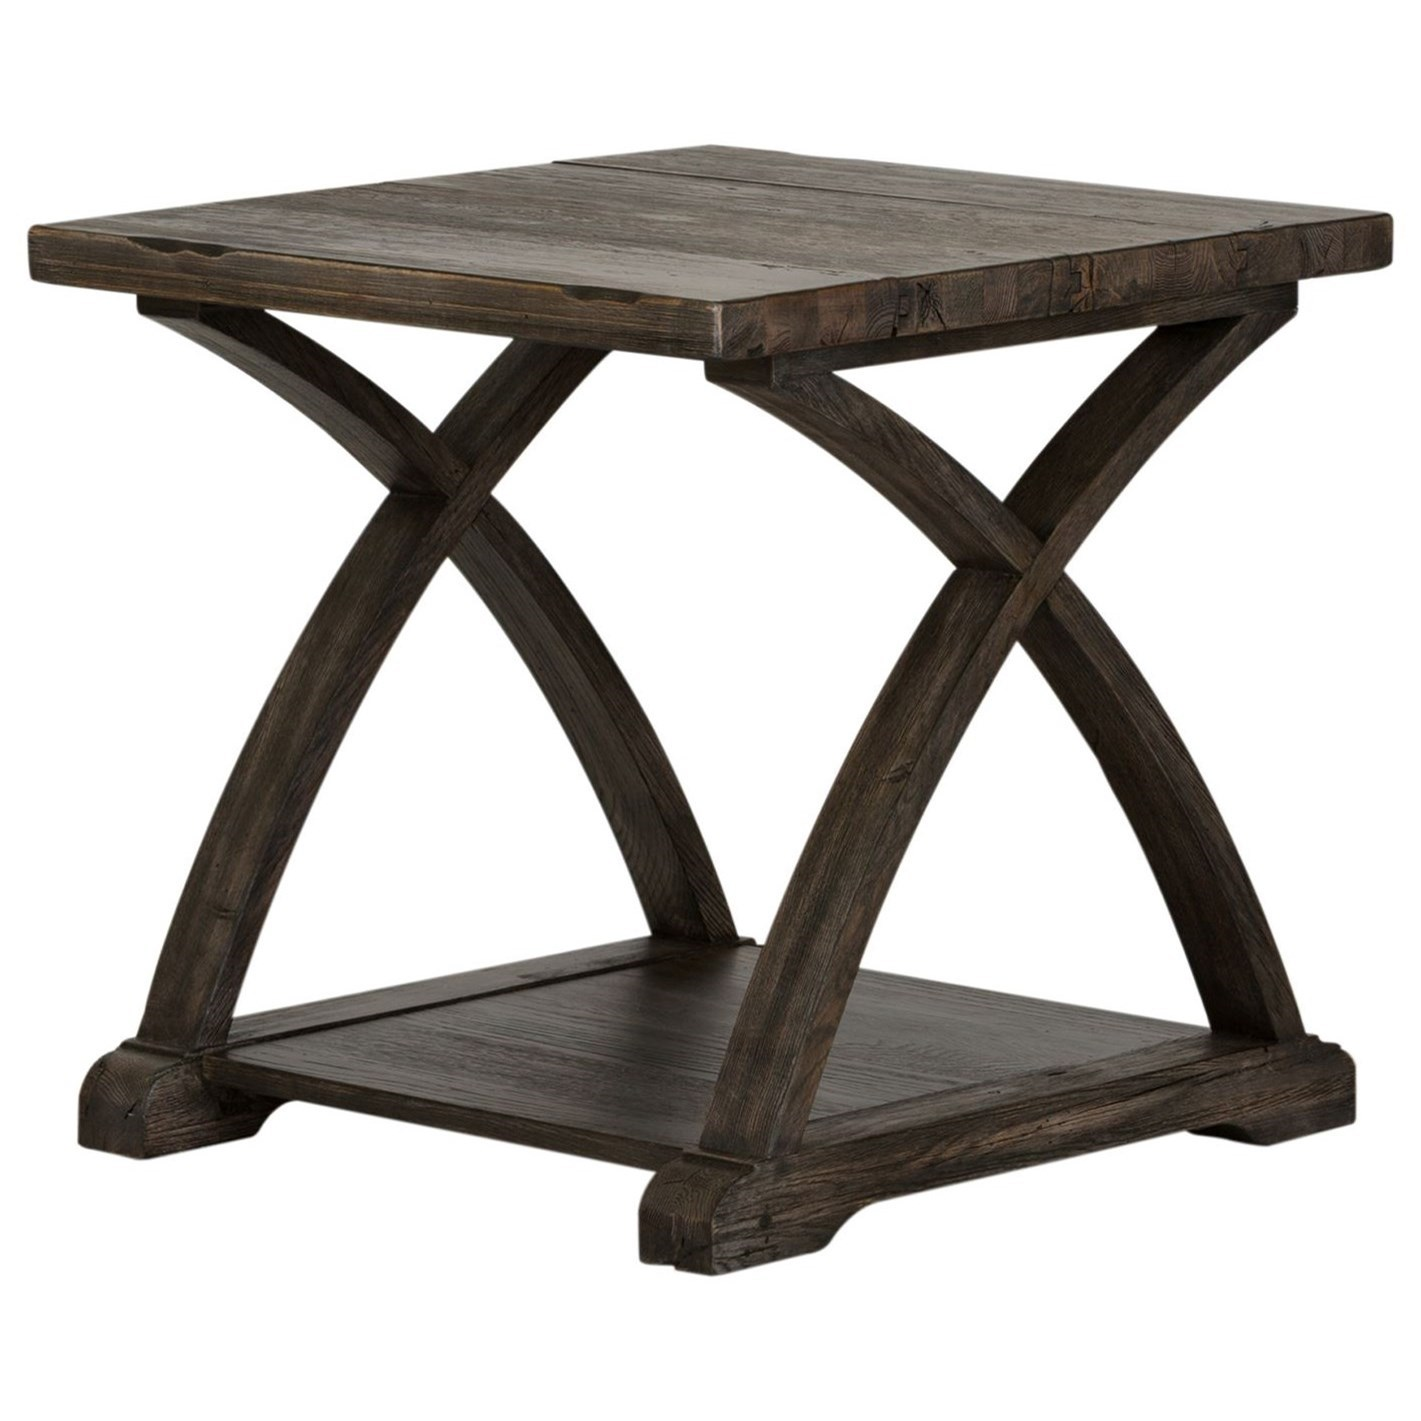 Twin Oaks End Table with Bottom Shelf by Liberty Furniture at Upper Room Home Furnishings